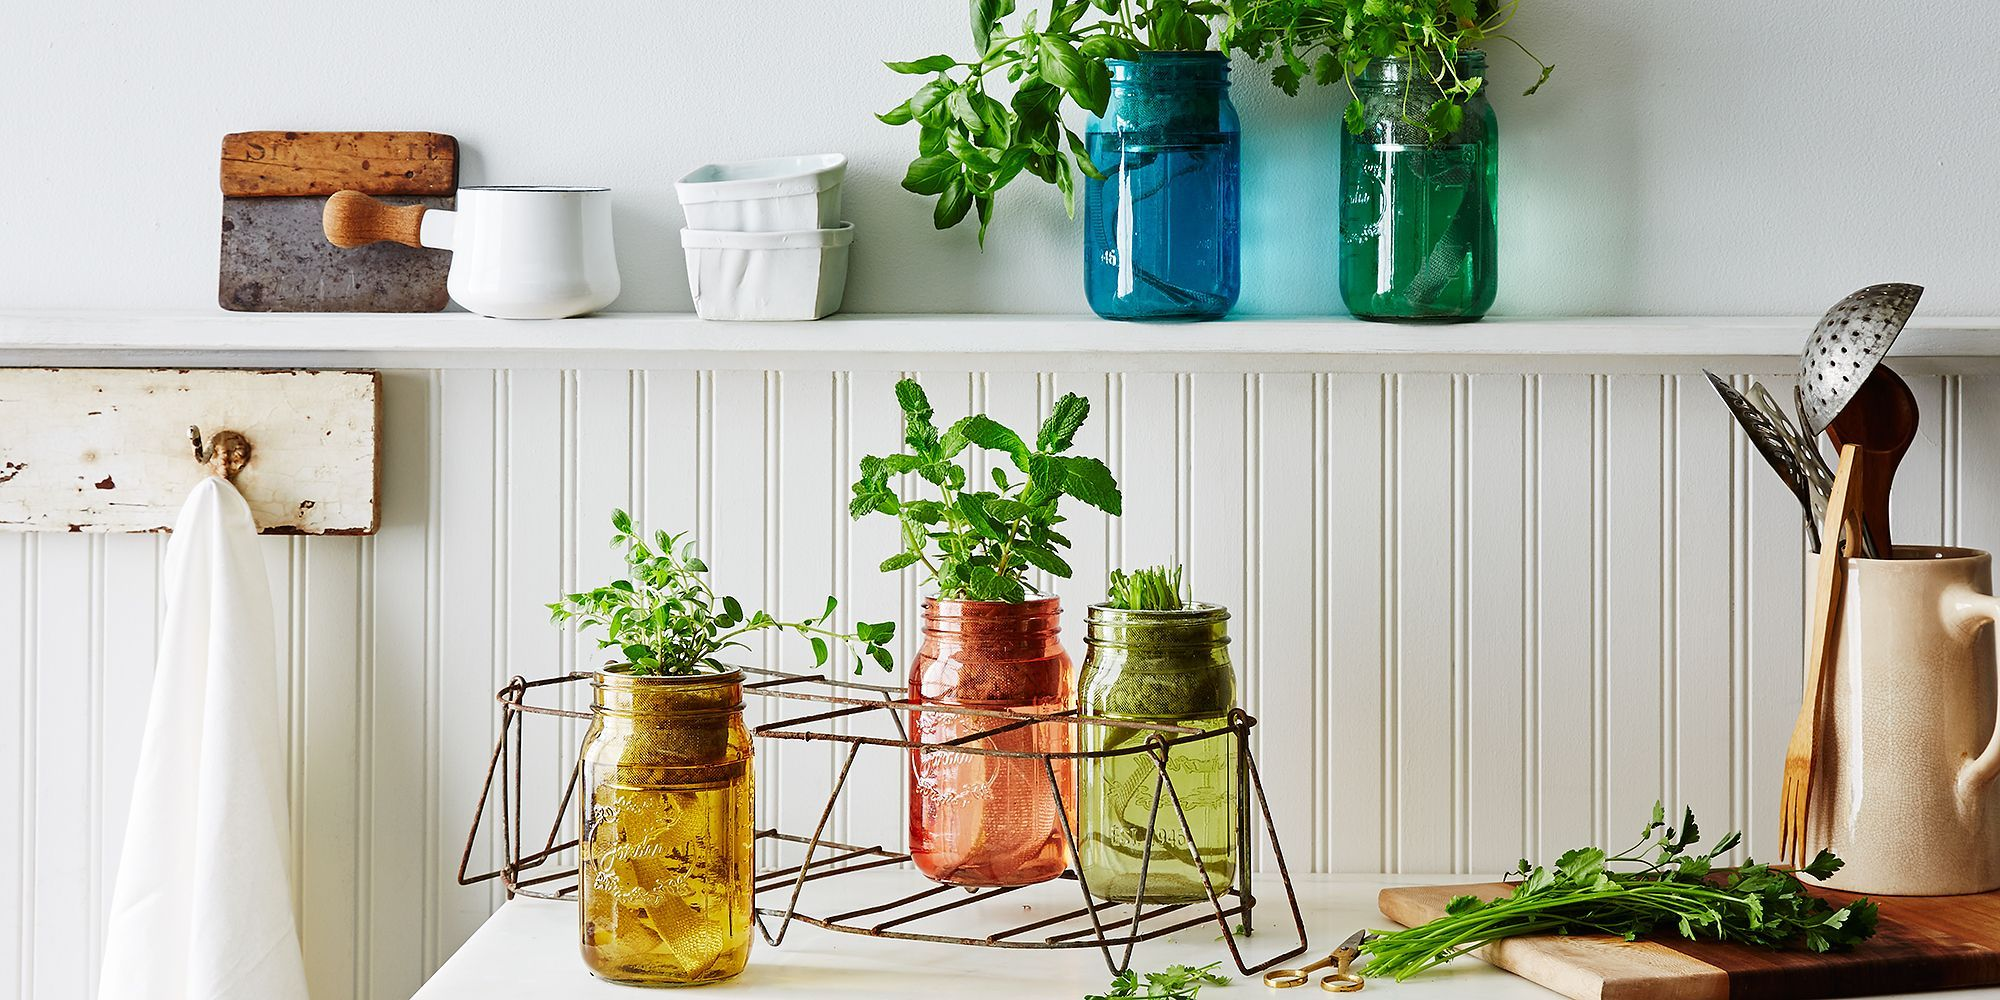 Just How Easy Is A Self Watering Herb Kit Extremely